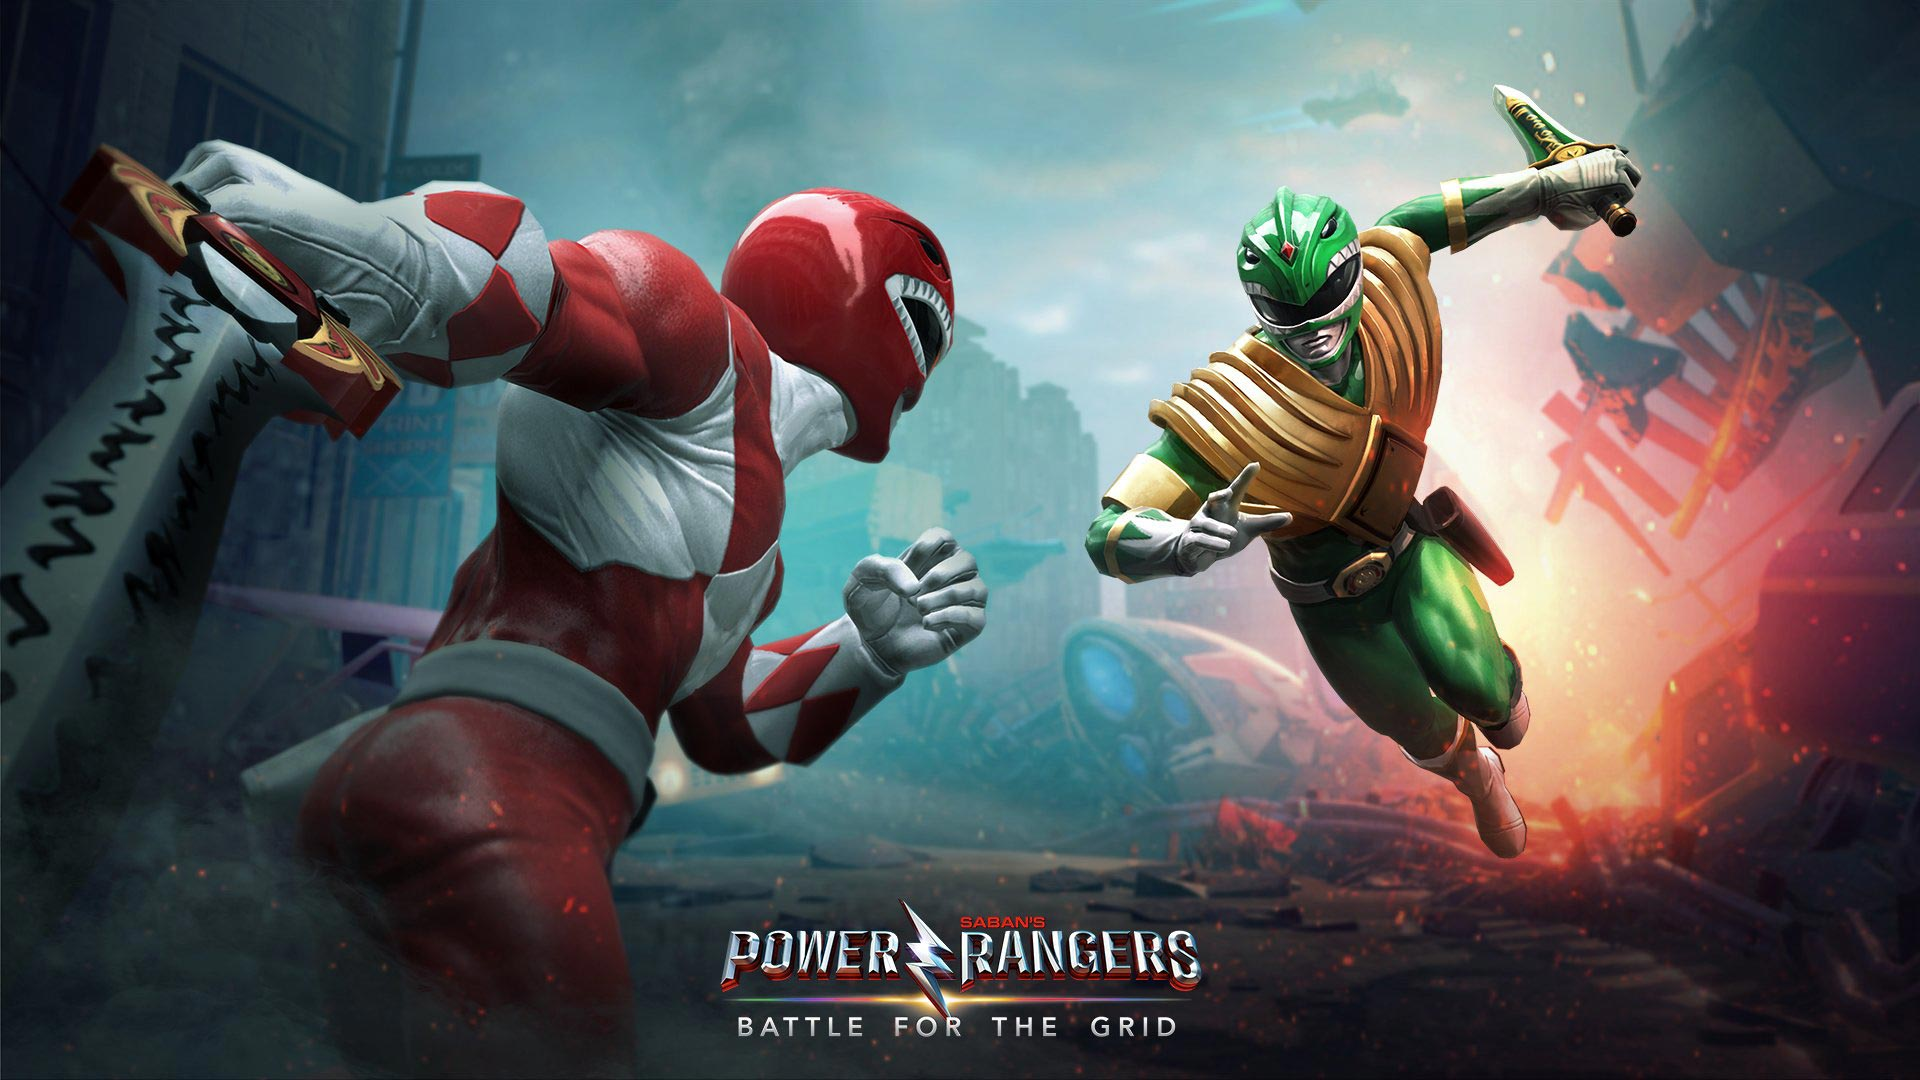 Power Rangers Battle for the Grid official screens 1 out of 6 image gallery